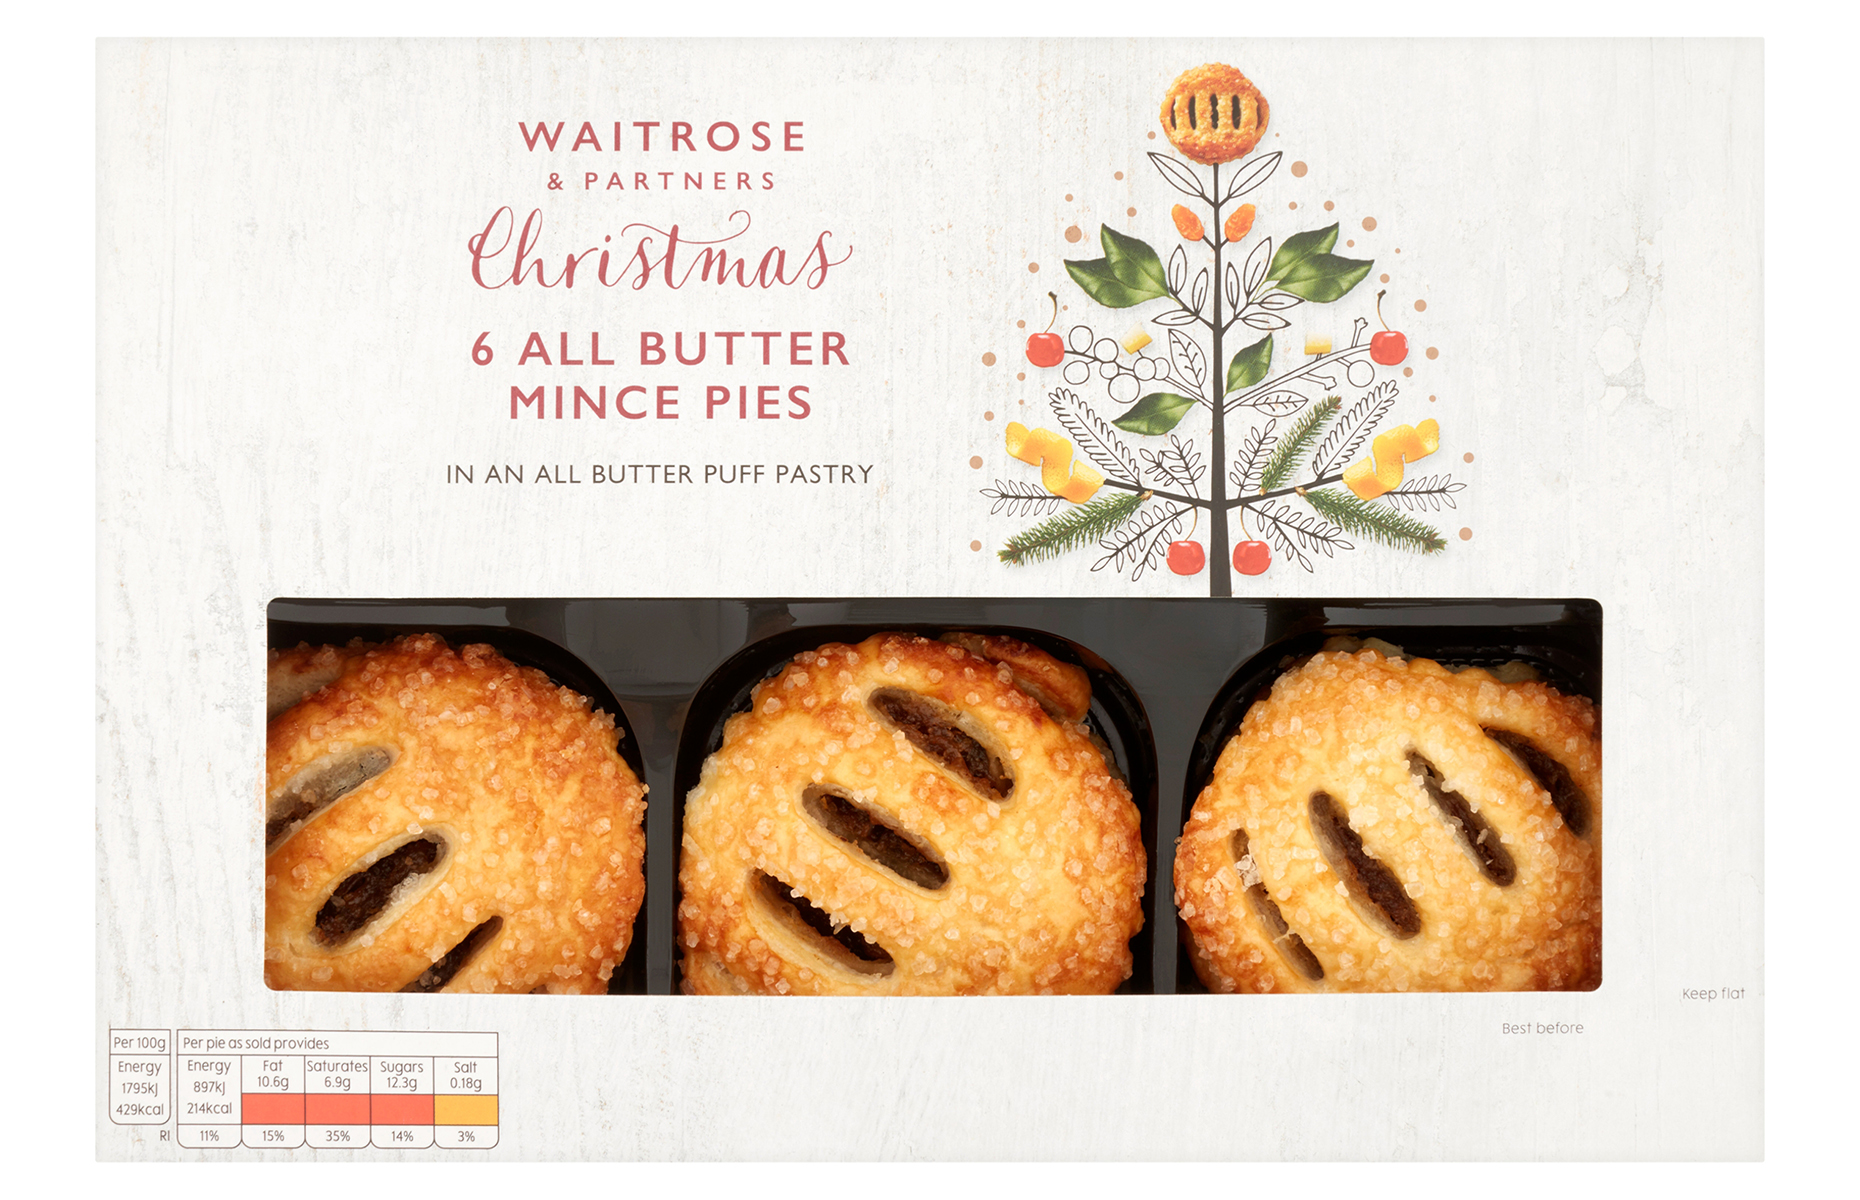 Waitrose & Partners 6 all butter puff pastry mince pies